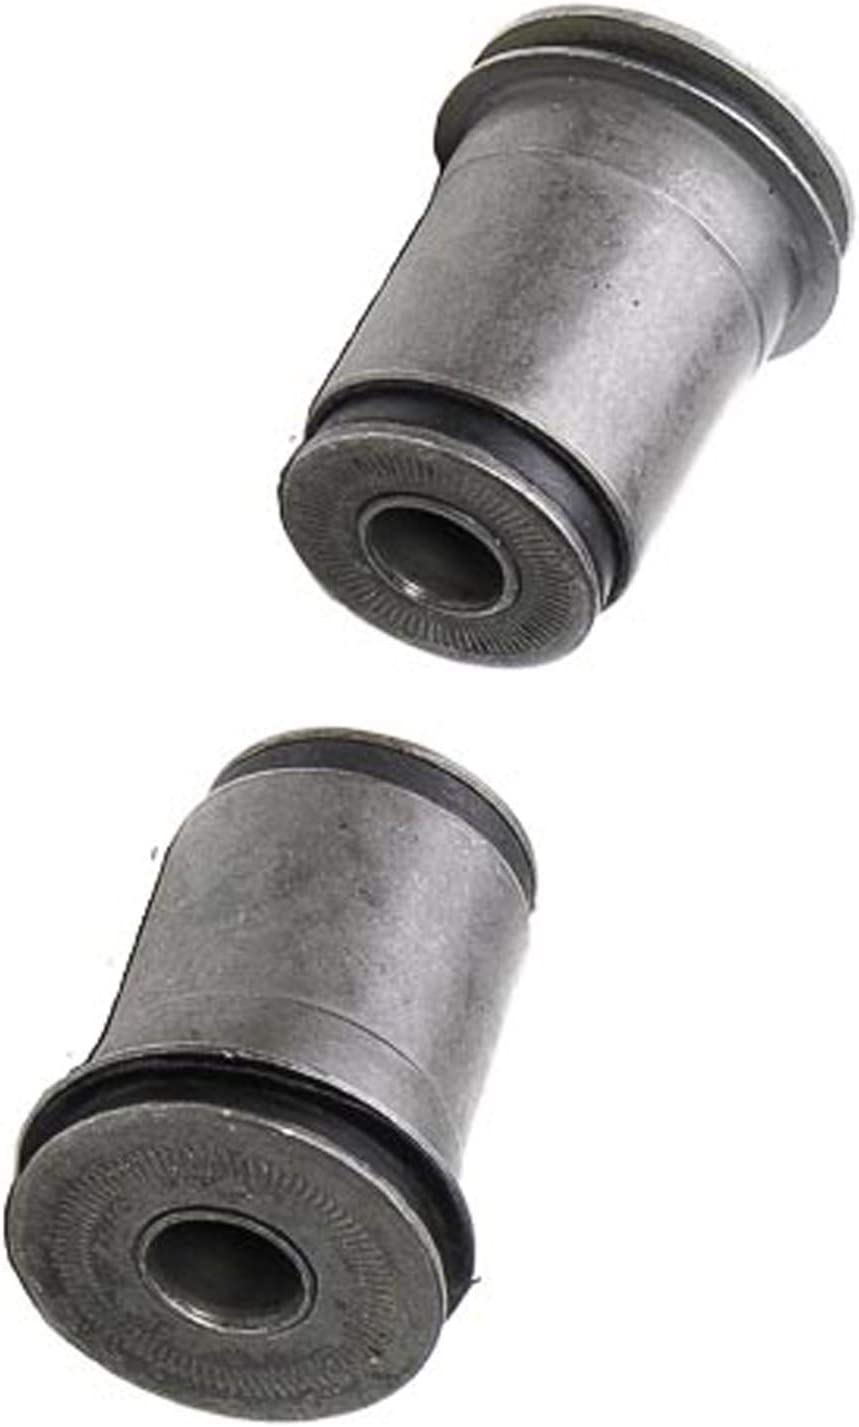 APDTY Max 68% OFF 146238 Bushing Animer and price revision